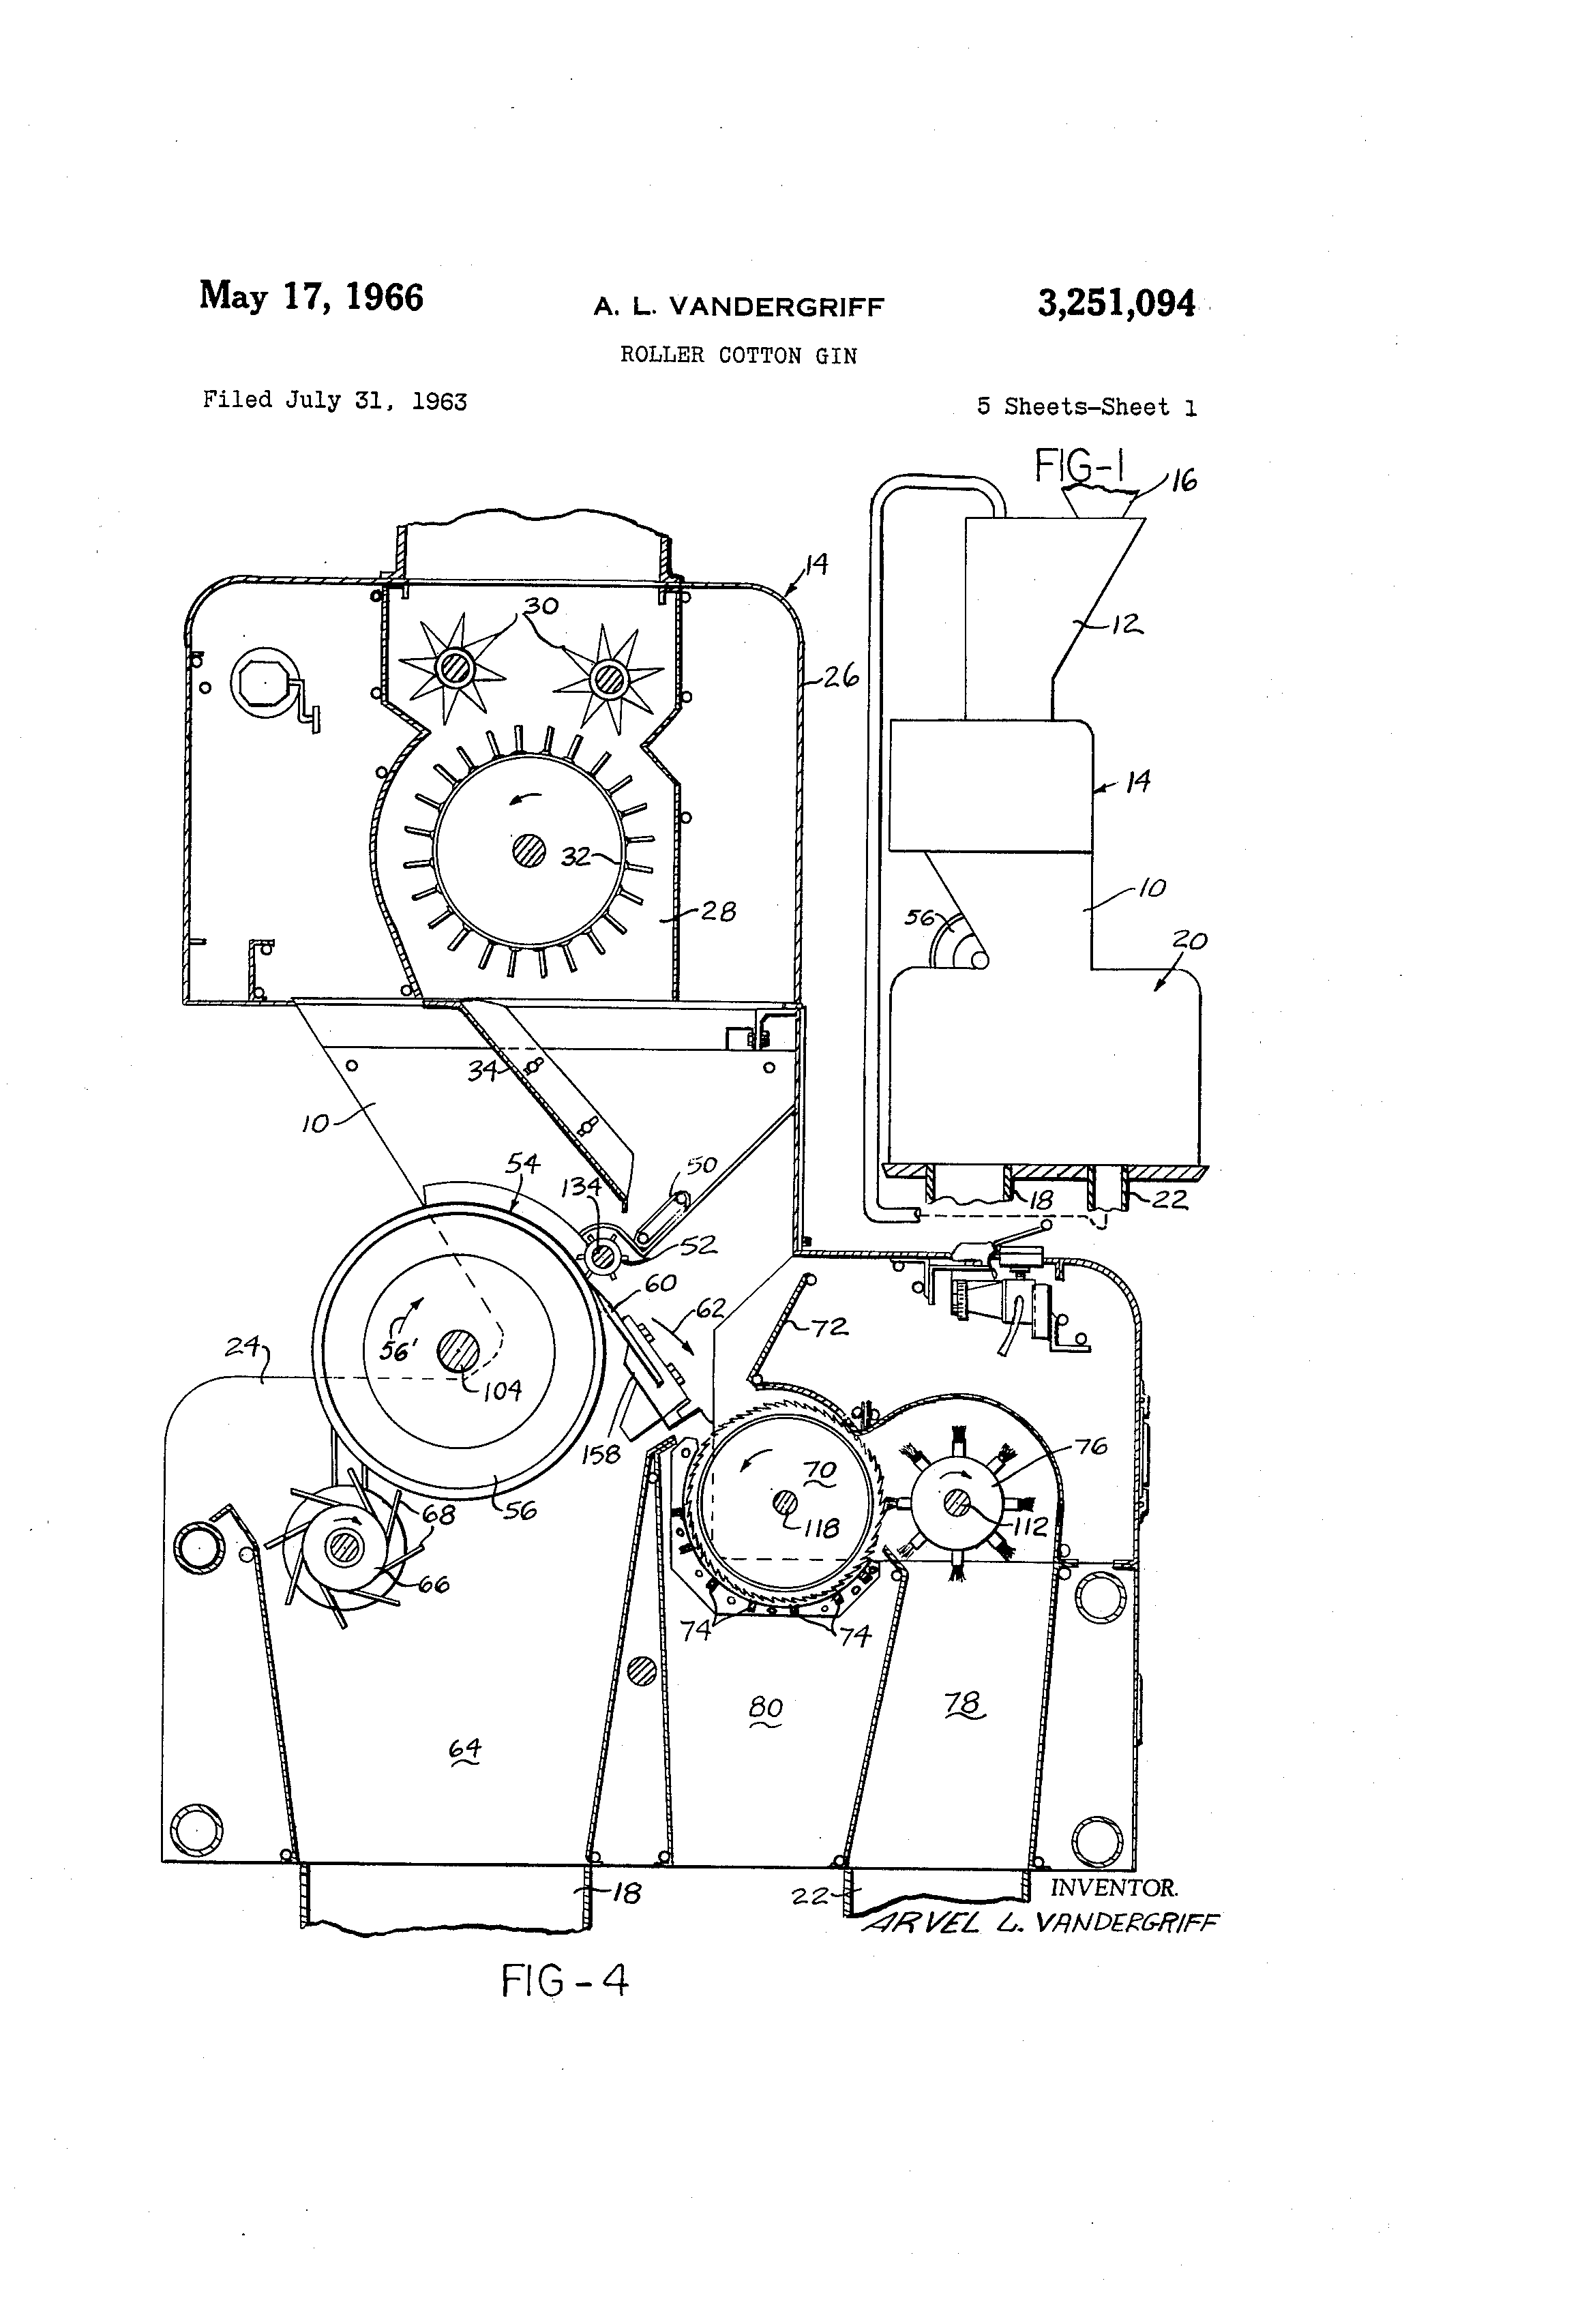 patent us3251094 - roller cotton gin